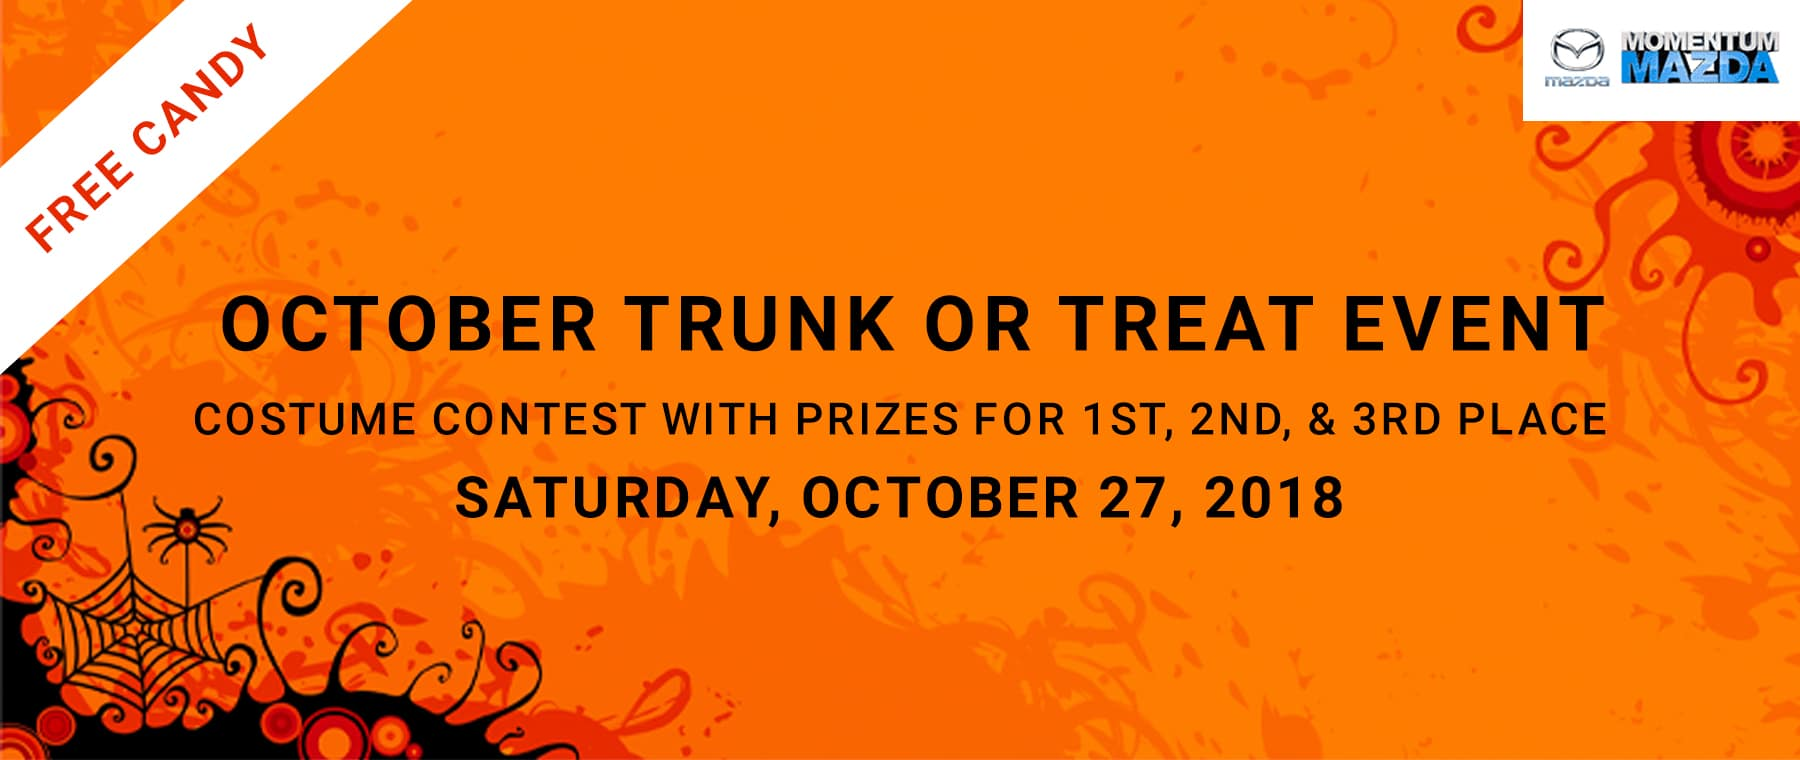 October Trunk or Treat